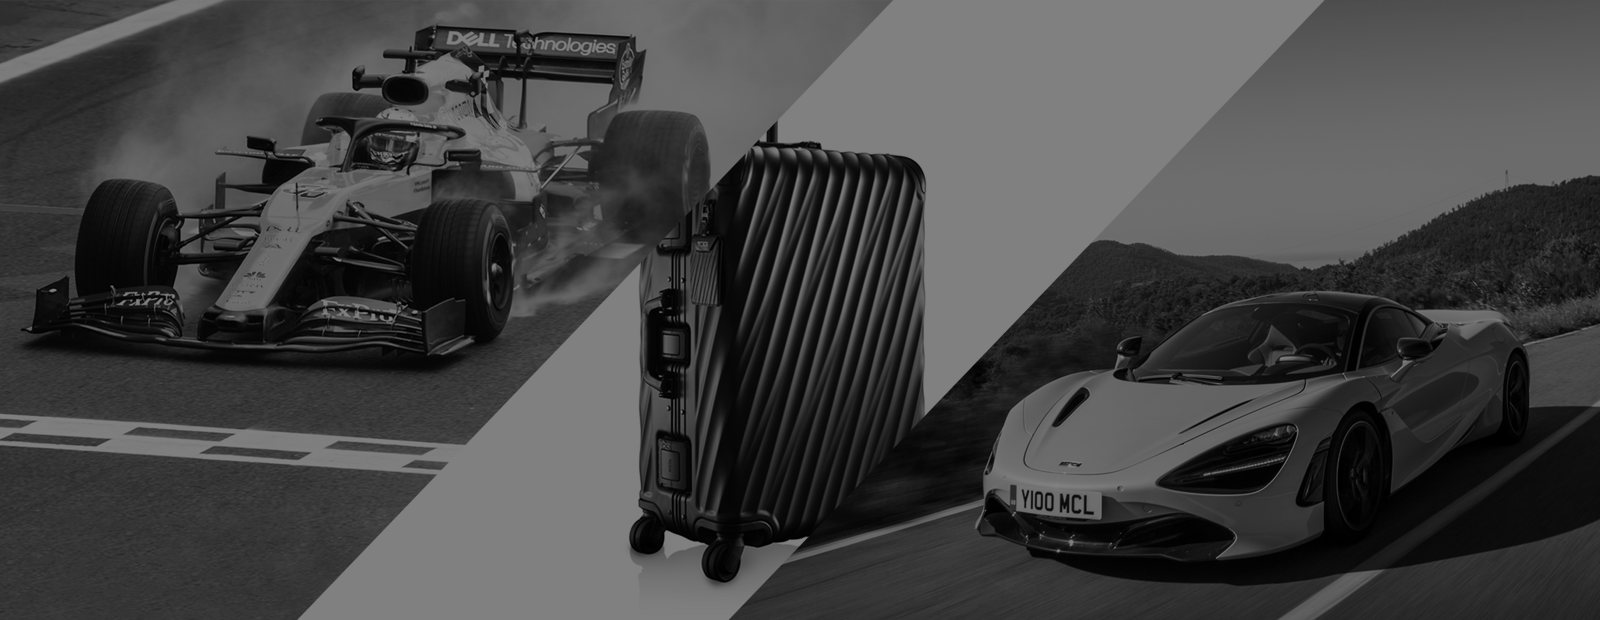 Tumi has become the official luggage partner of McLaren Racing and McLaren Automotive.